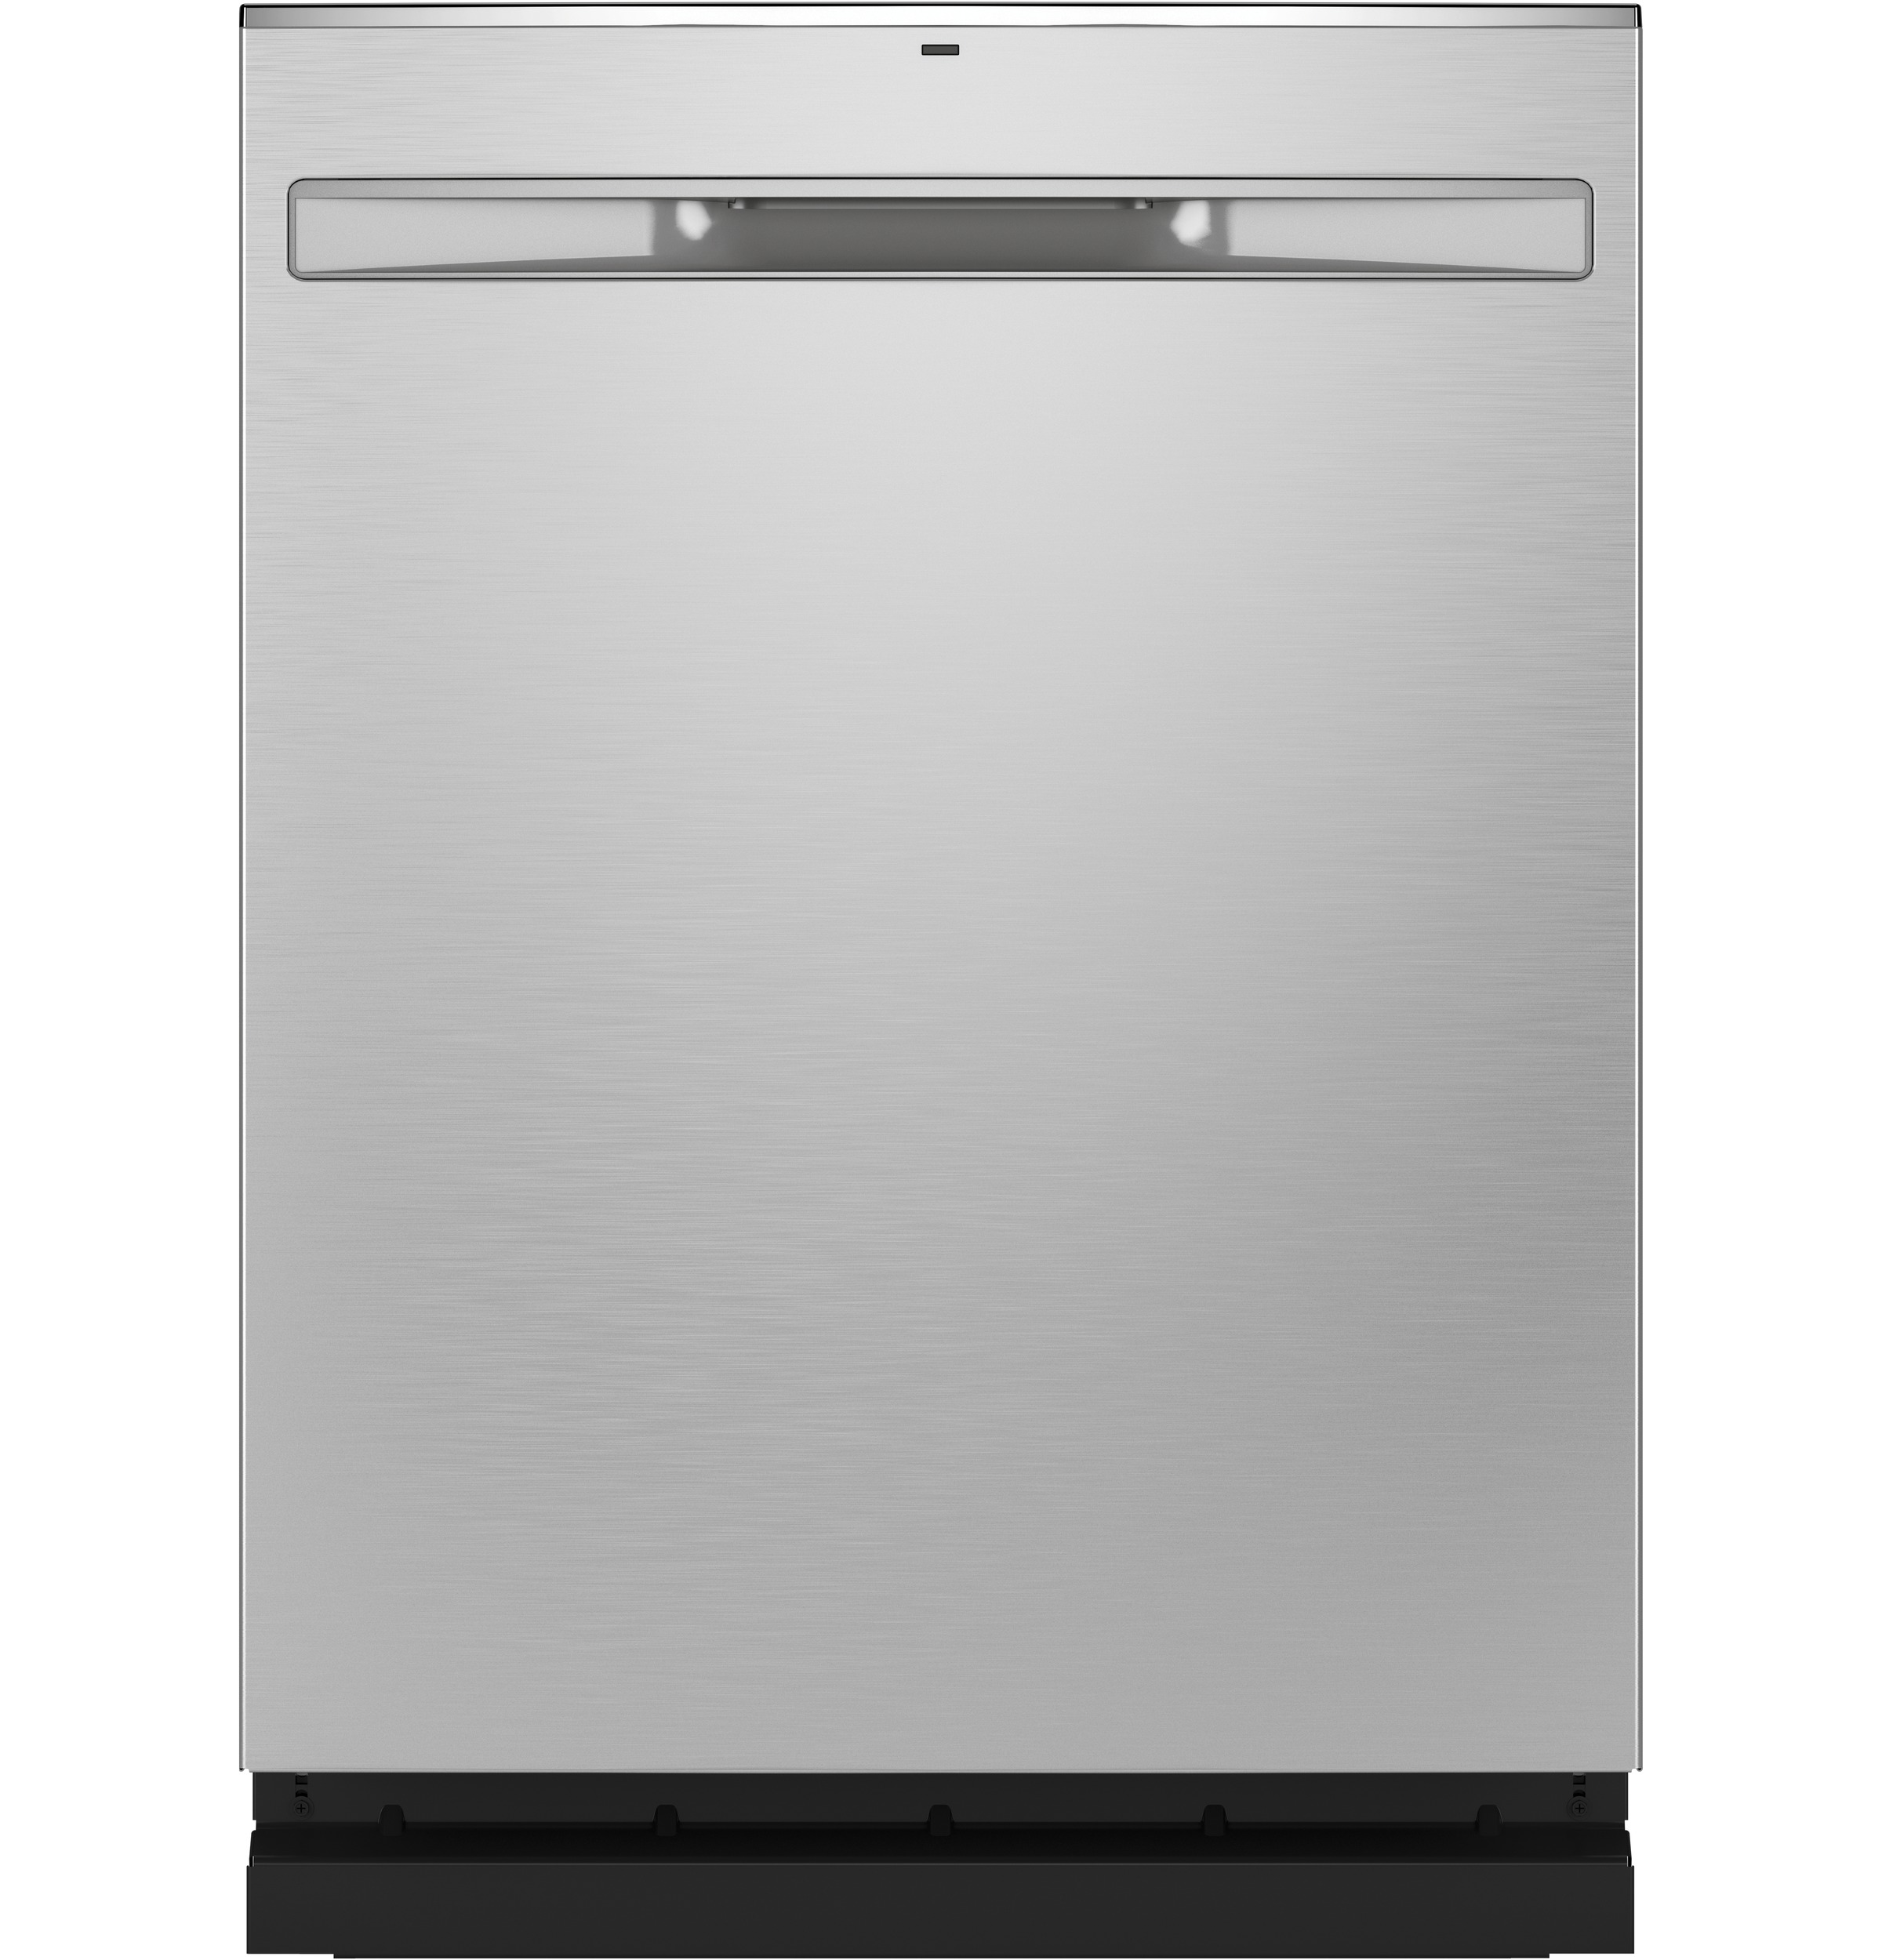 GE GE® Fingerprint Resistant Top Control with Stainless Steel Interior Dishwasher with Sanitize Cycle & Dry Boost with Fan Assist